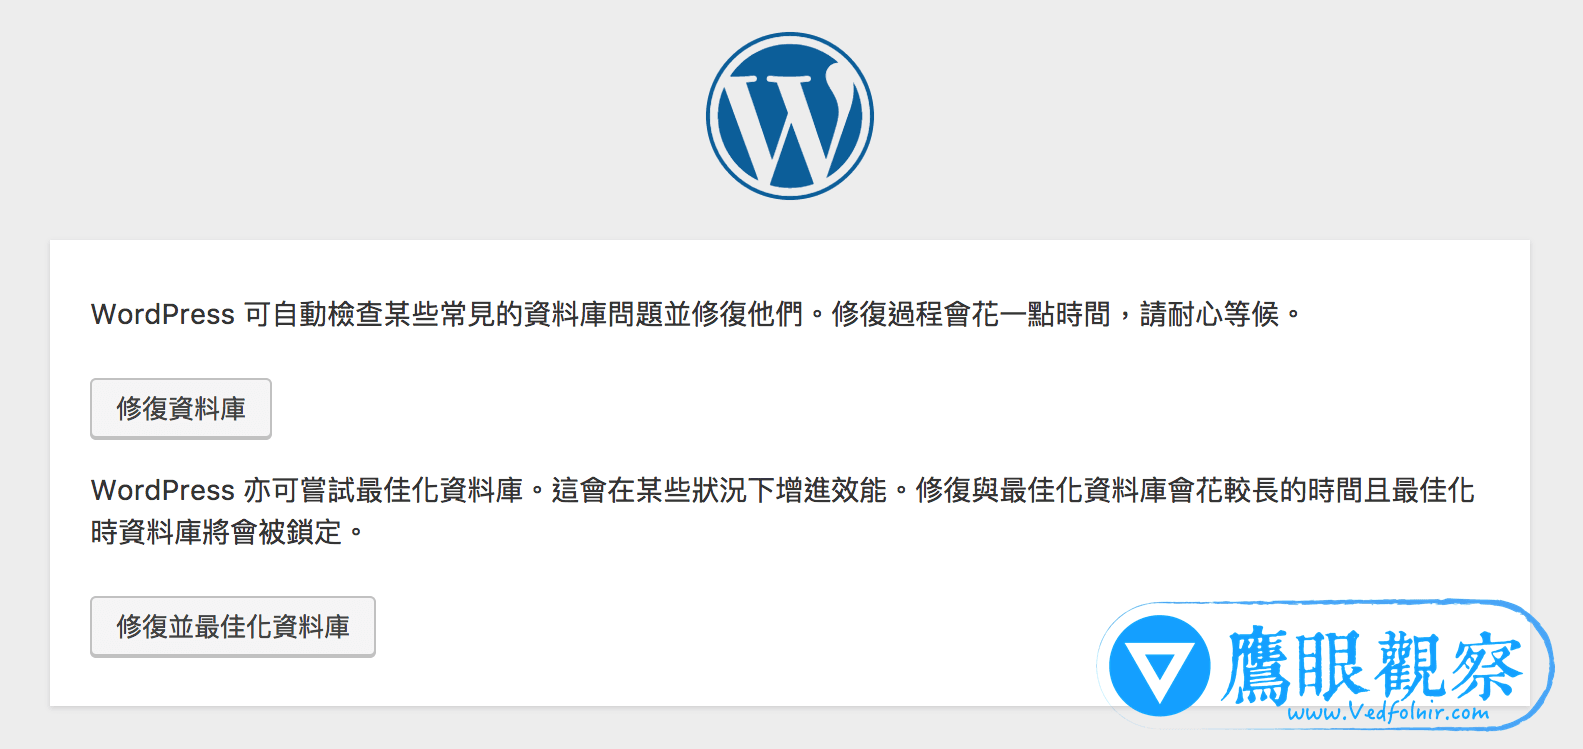 WordPress Database Auto Repair Interface WordPress教學:免裝外掛也能修復 MySQL 資料庫和自動最佳化整理